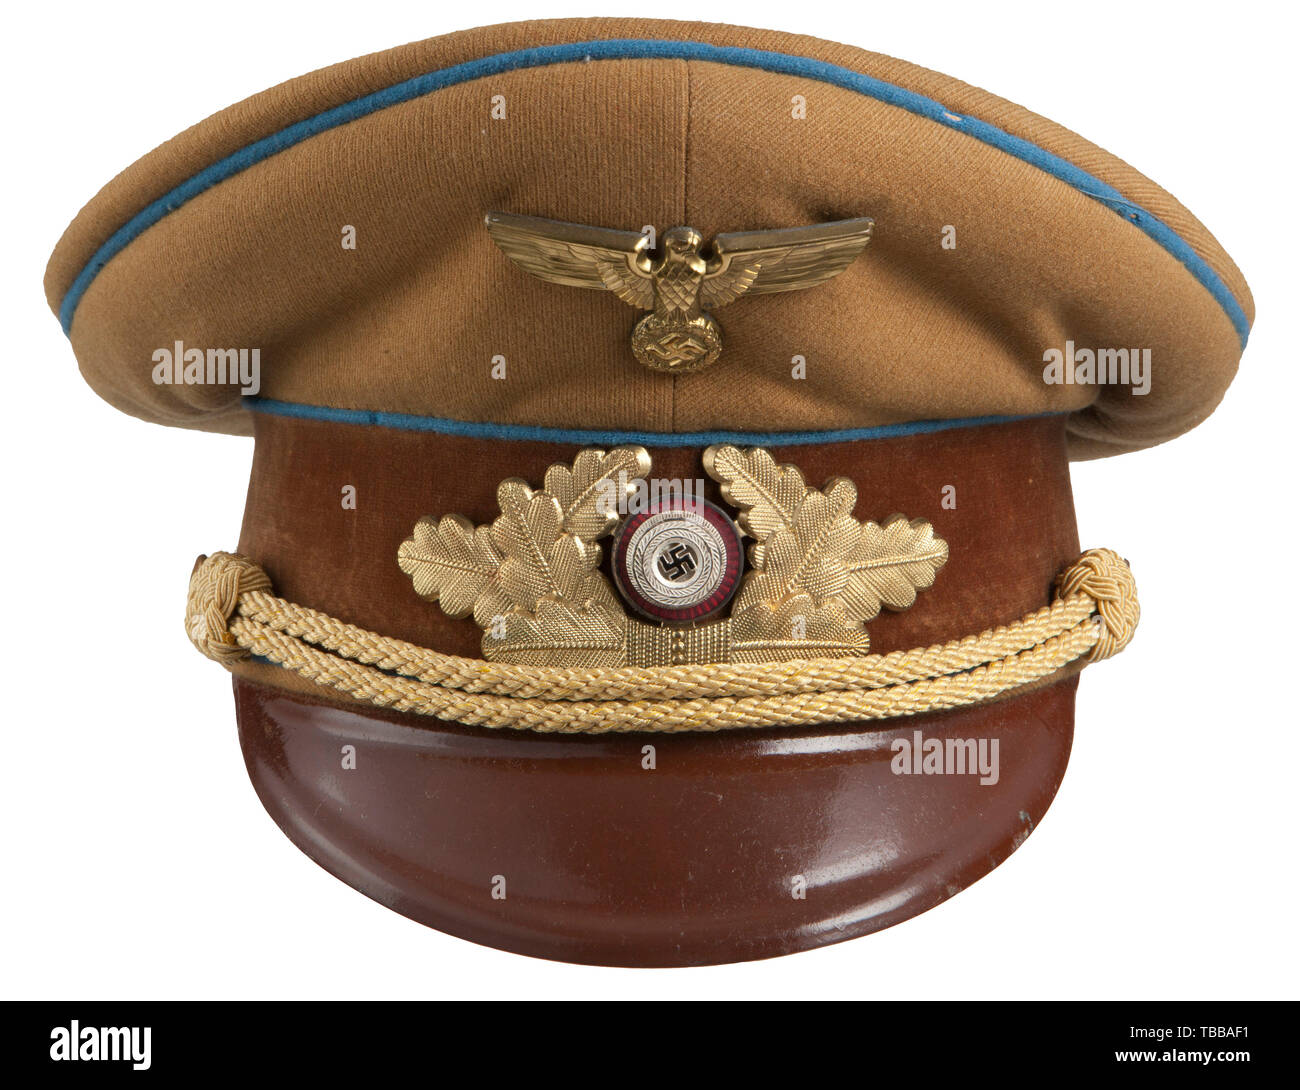 THE JOHN PEPERA COLLECTION, A Visor Hat M 39 for Officials of the NSDAP Ortsgruppe, Fine light brown wool twill top, brown velvet centre band, light blue wool piping has minor moth damage. Gilt metal insignia, with enamelled cockade, gold cellon chin cords retained by gilt stippled side buttons and a brown lacquered visor. Orange/brown linen lining with RZM label under leather sweatband is complete with intact moisture shield, paper size tag with ink size stamp '55' and a GI written note to family when sent home as a souvenir. Visor exhibits no wear and appears unissued sti, Editorial-Use-Only - Stock Image